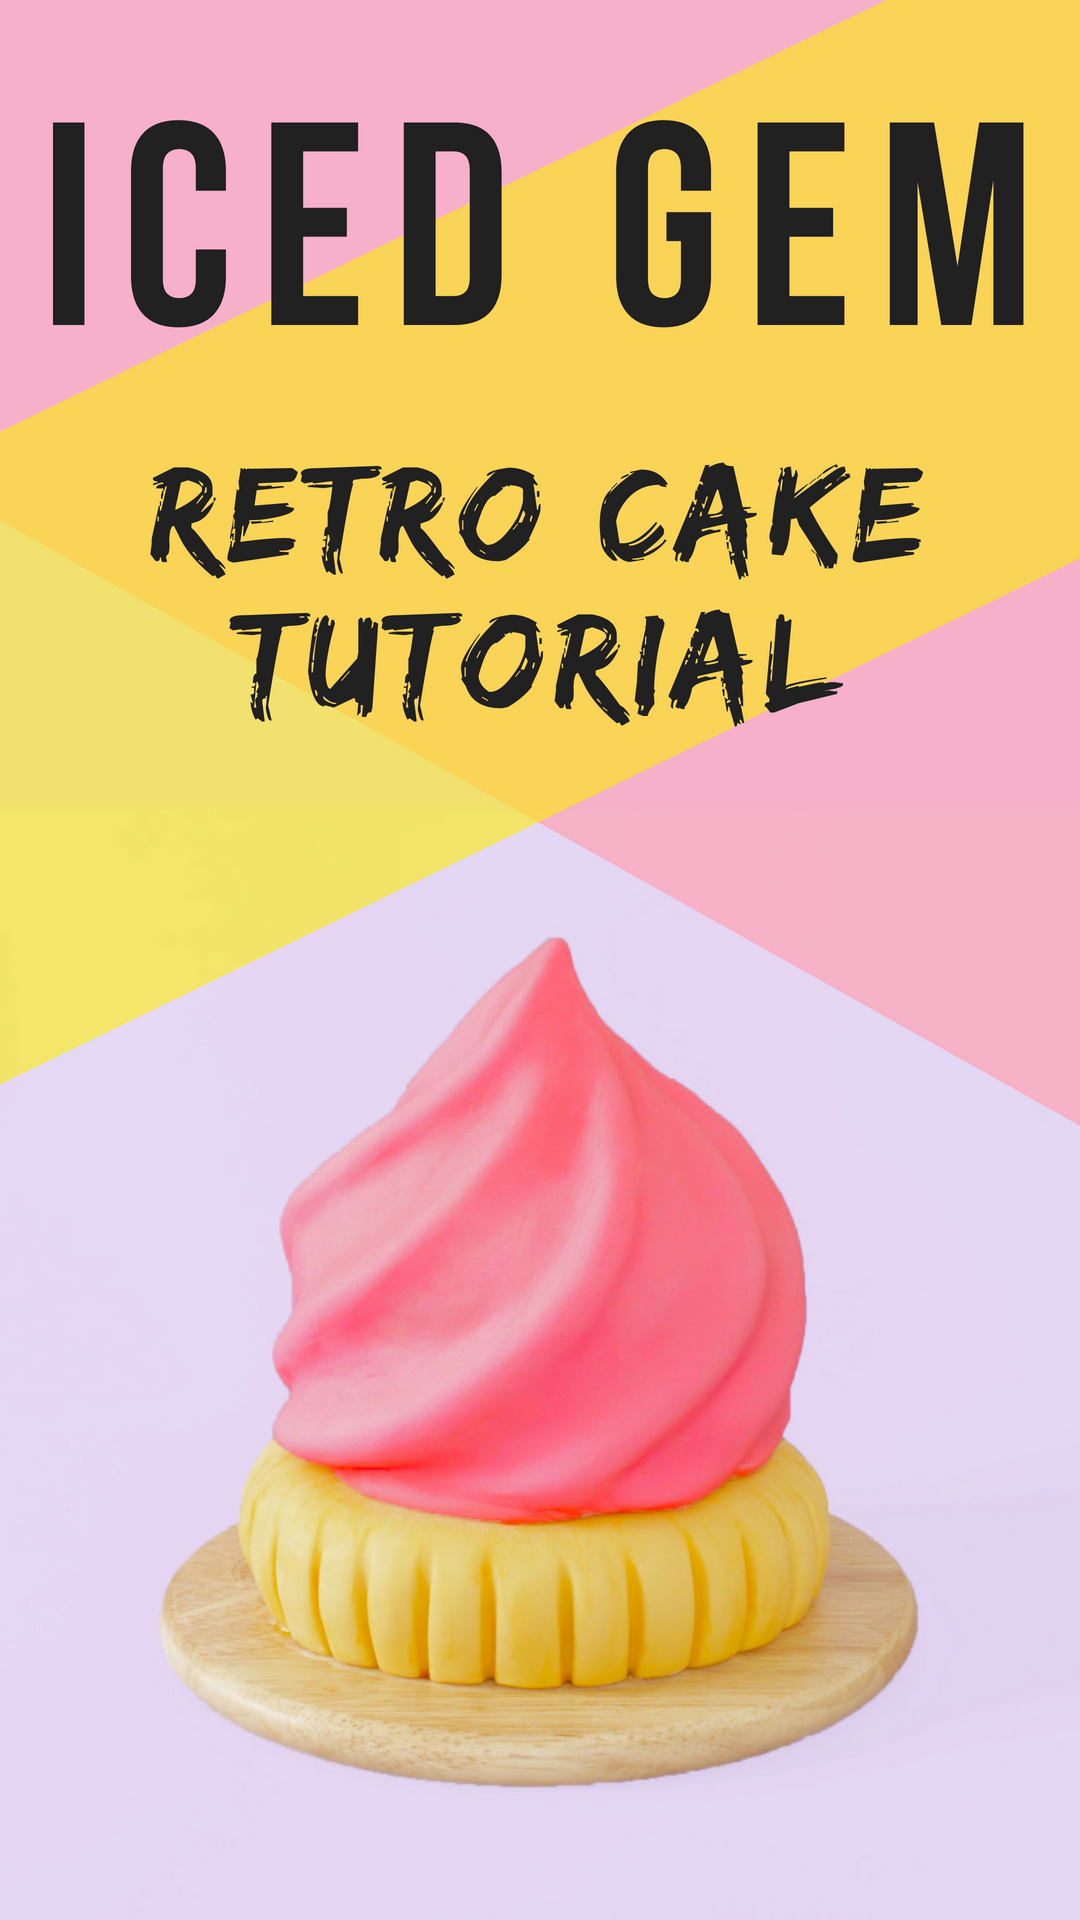 Retro Iced Gem Cake Tutorial